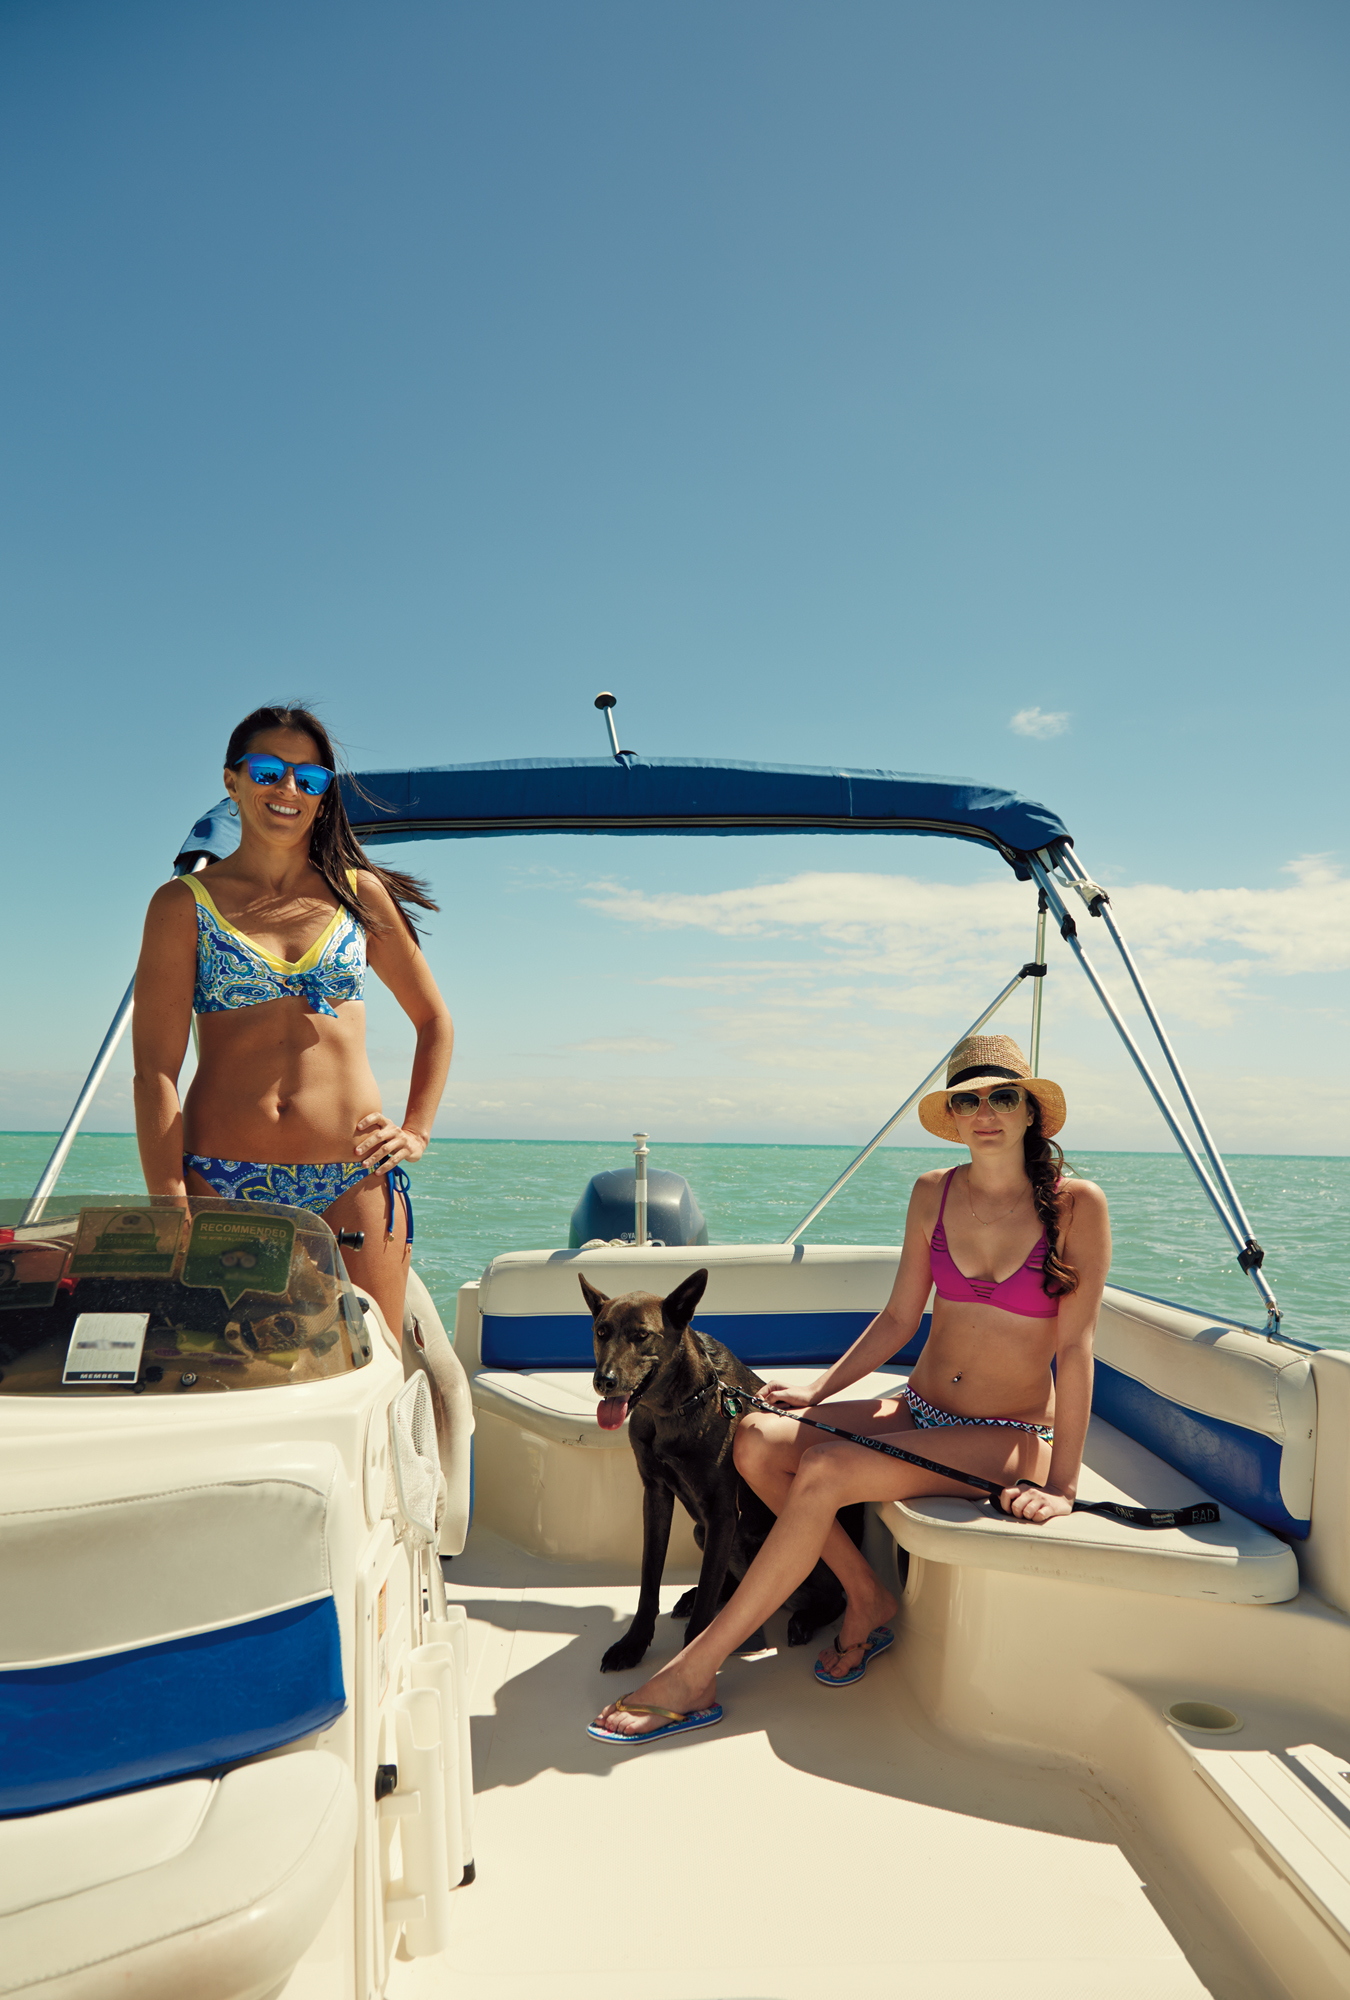 Models in swimsuits with dog on speedboat